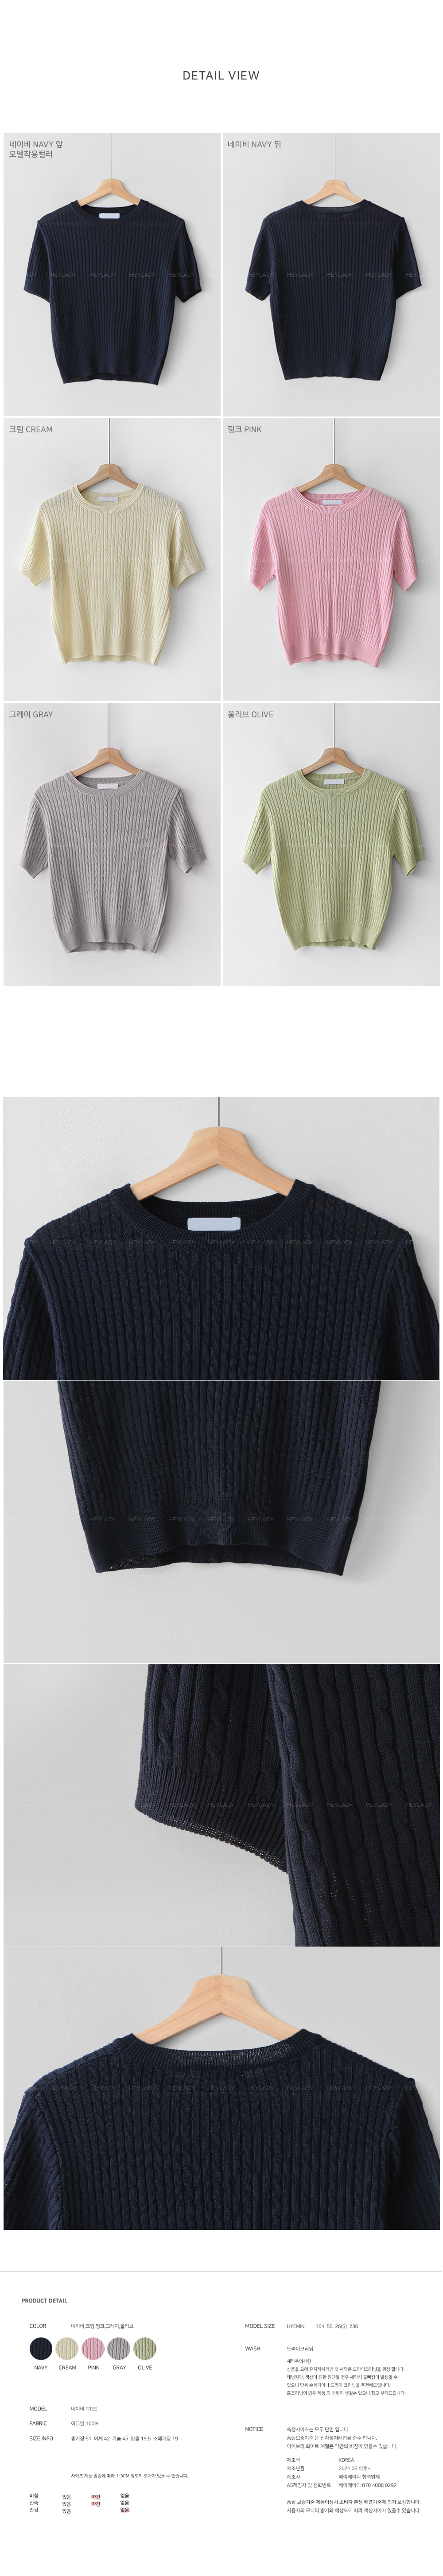 edic cable knitwear